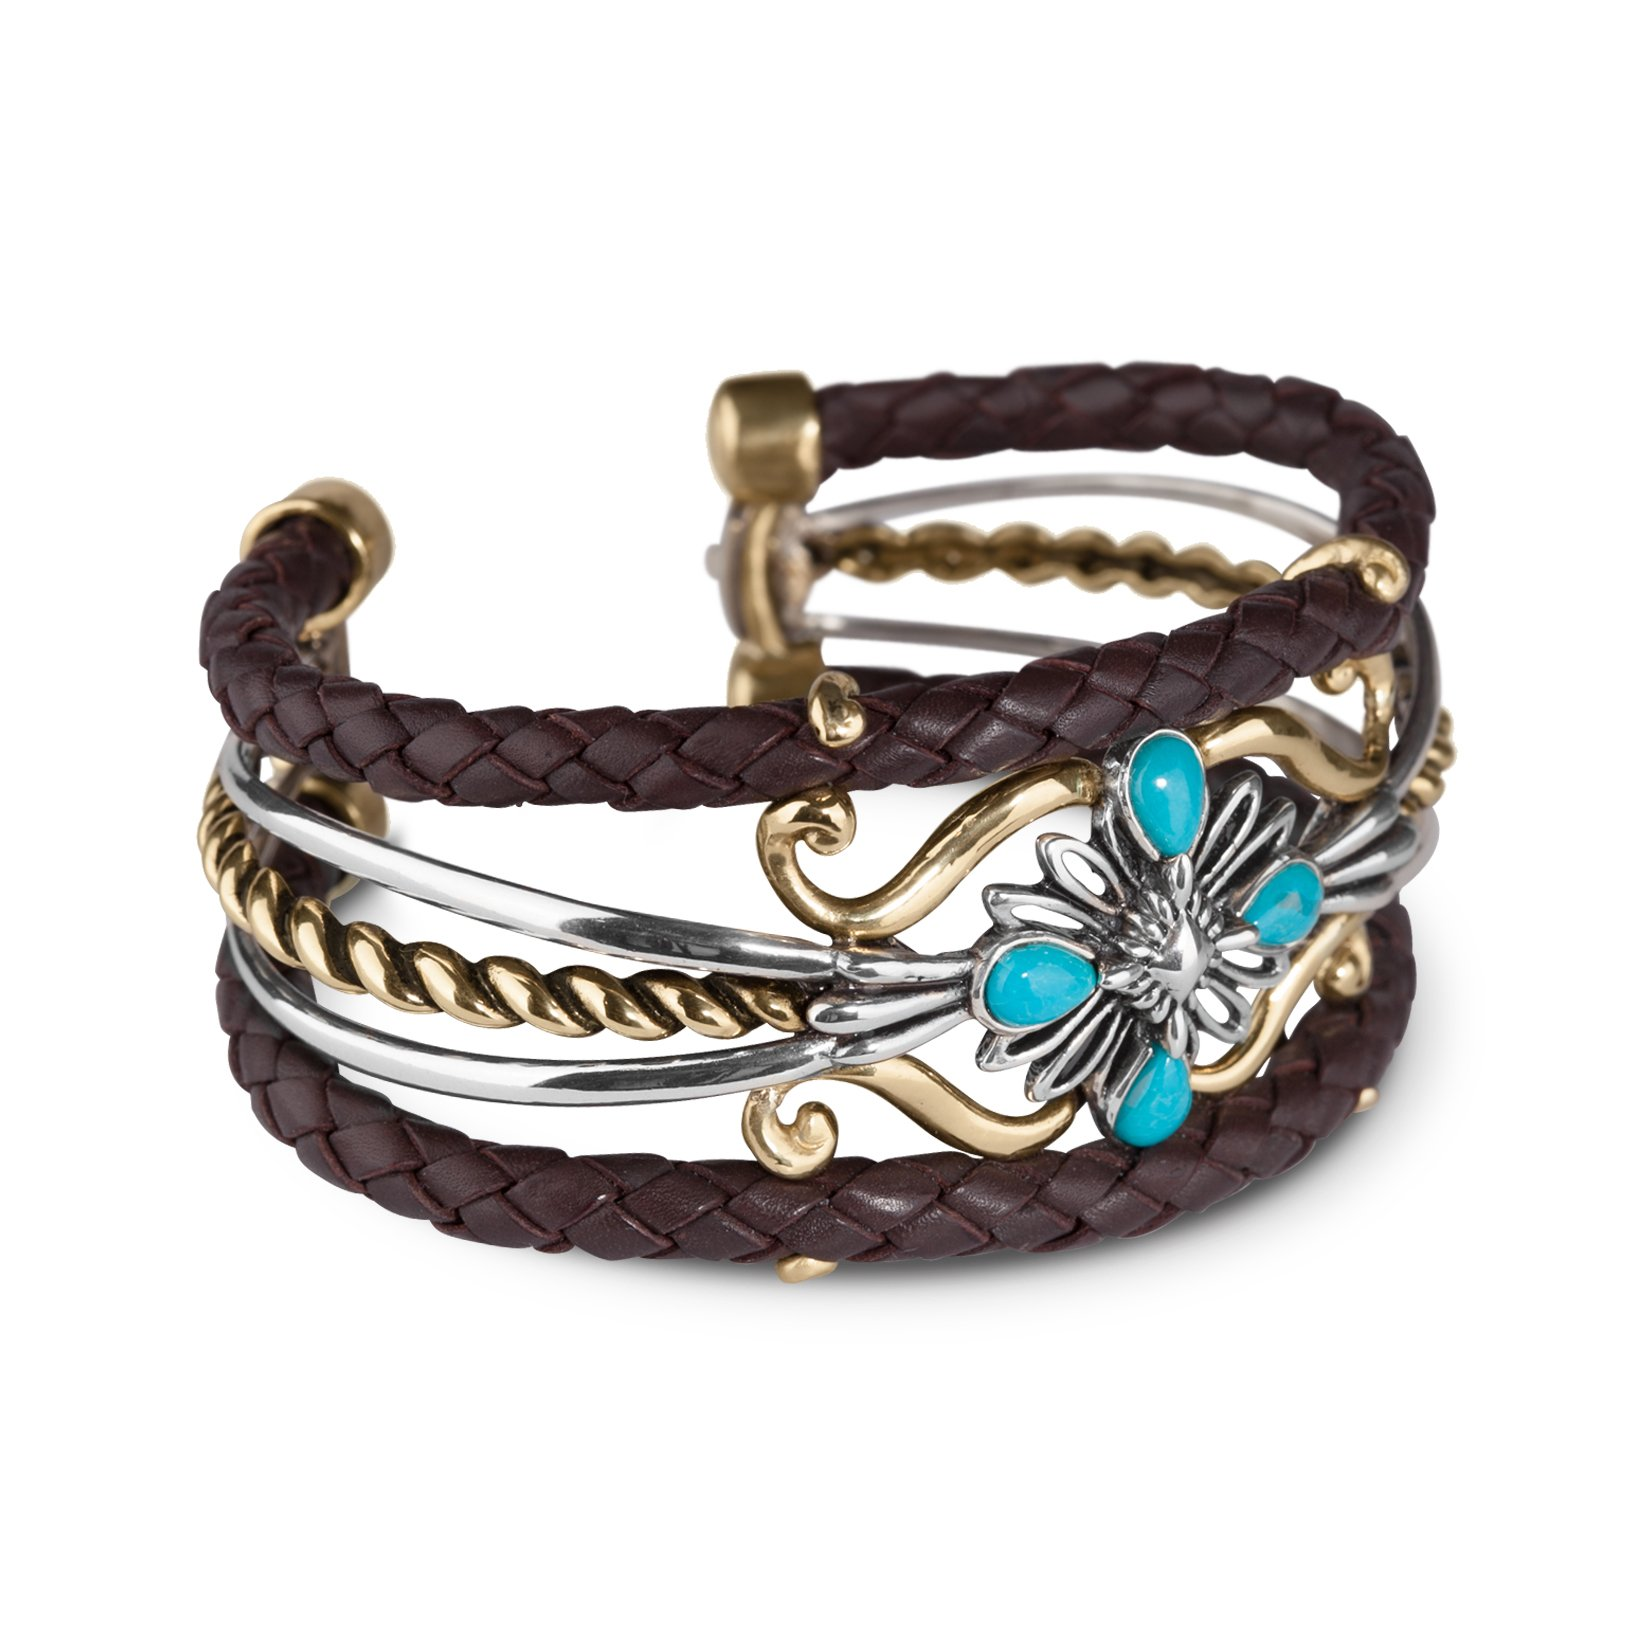 Sterling Silver, Brass and Leather Cuff Bracelet with Turquoise Gemstones by American West